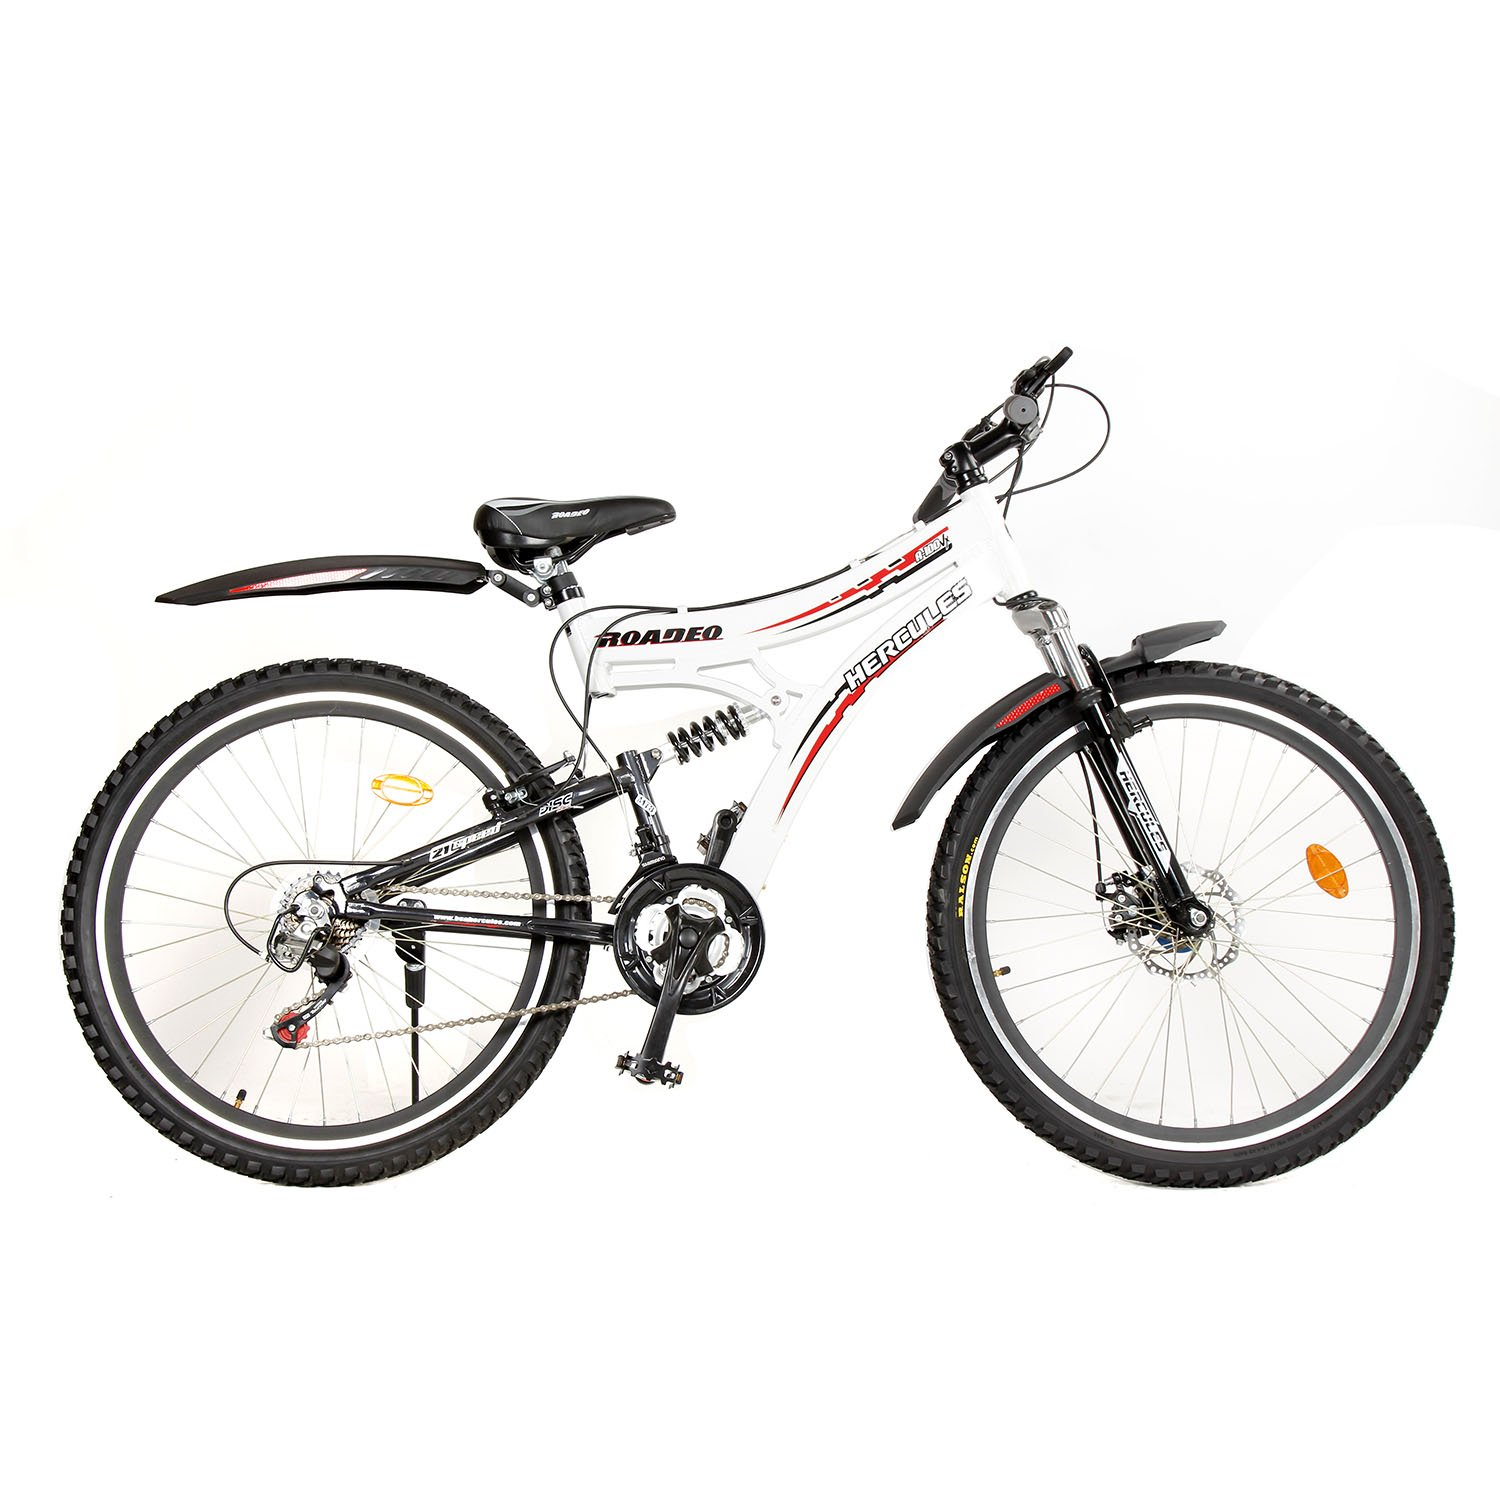 Hercules Roadeo A100 VX 26T 21 Speed Mountain Bike (White/Black) product image